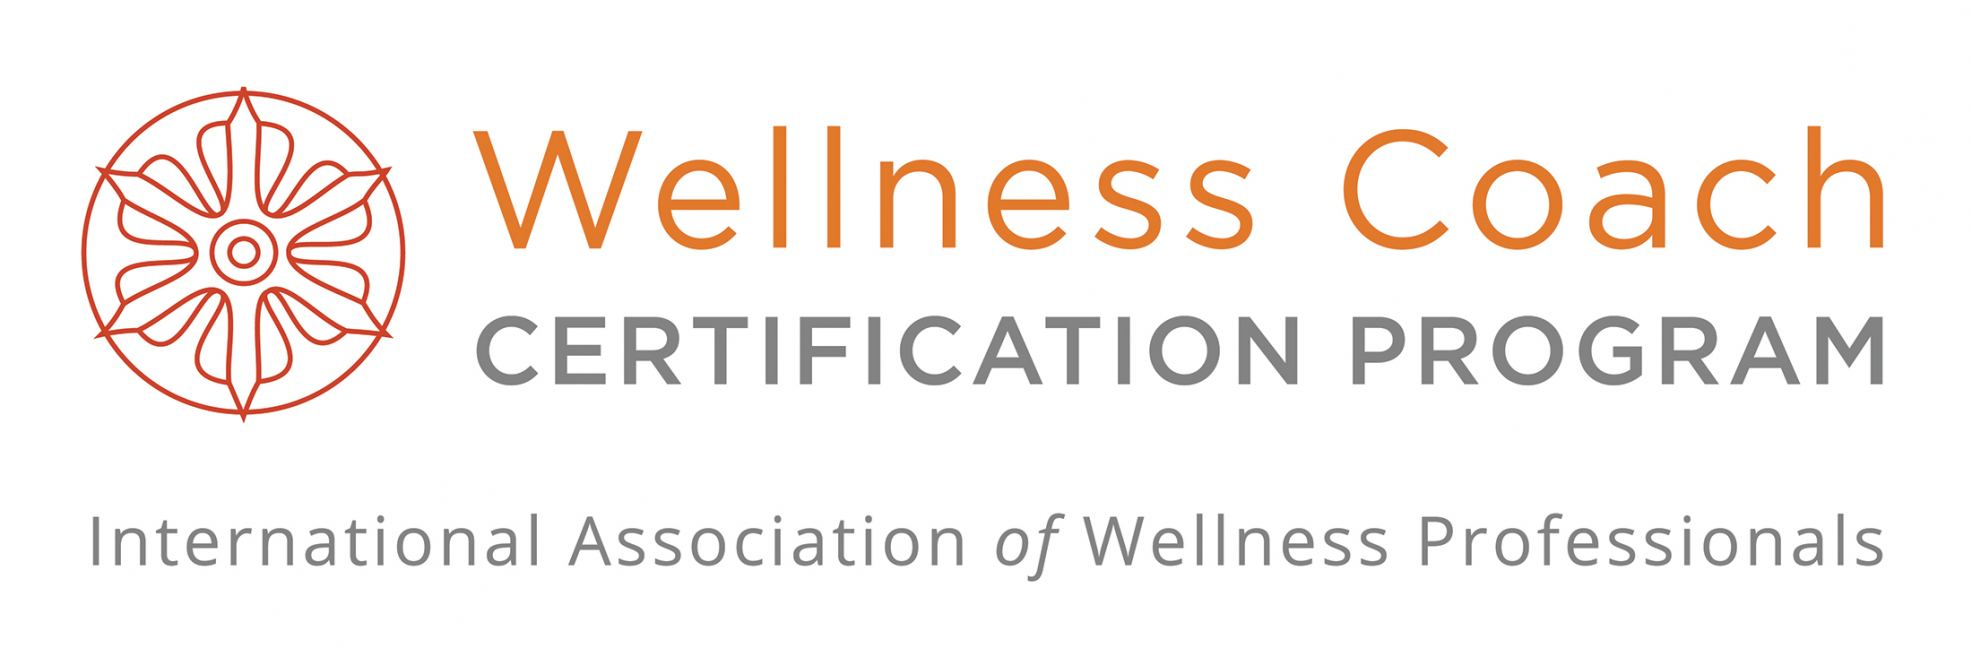 International Association of Wellness Professionals